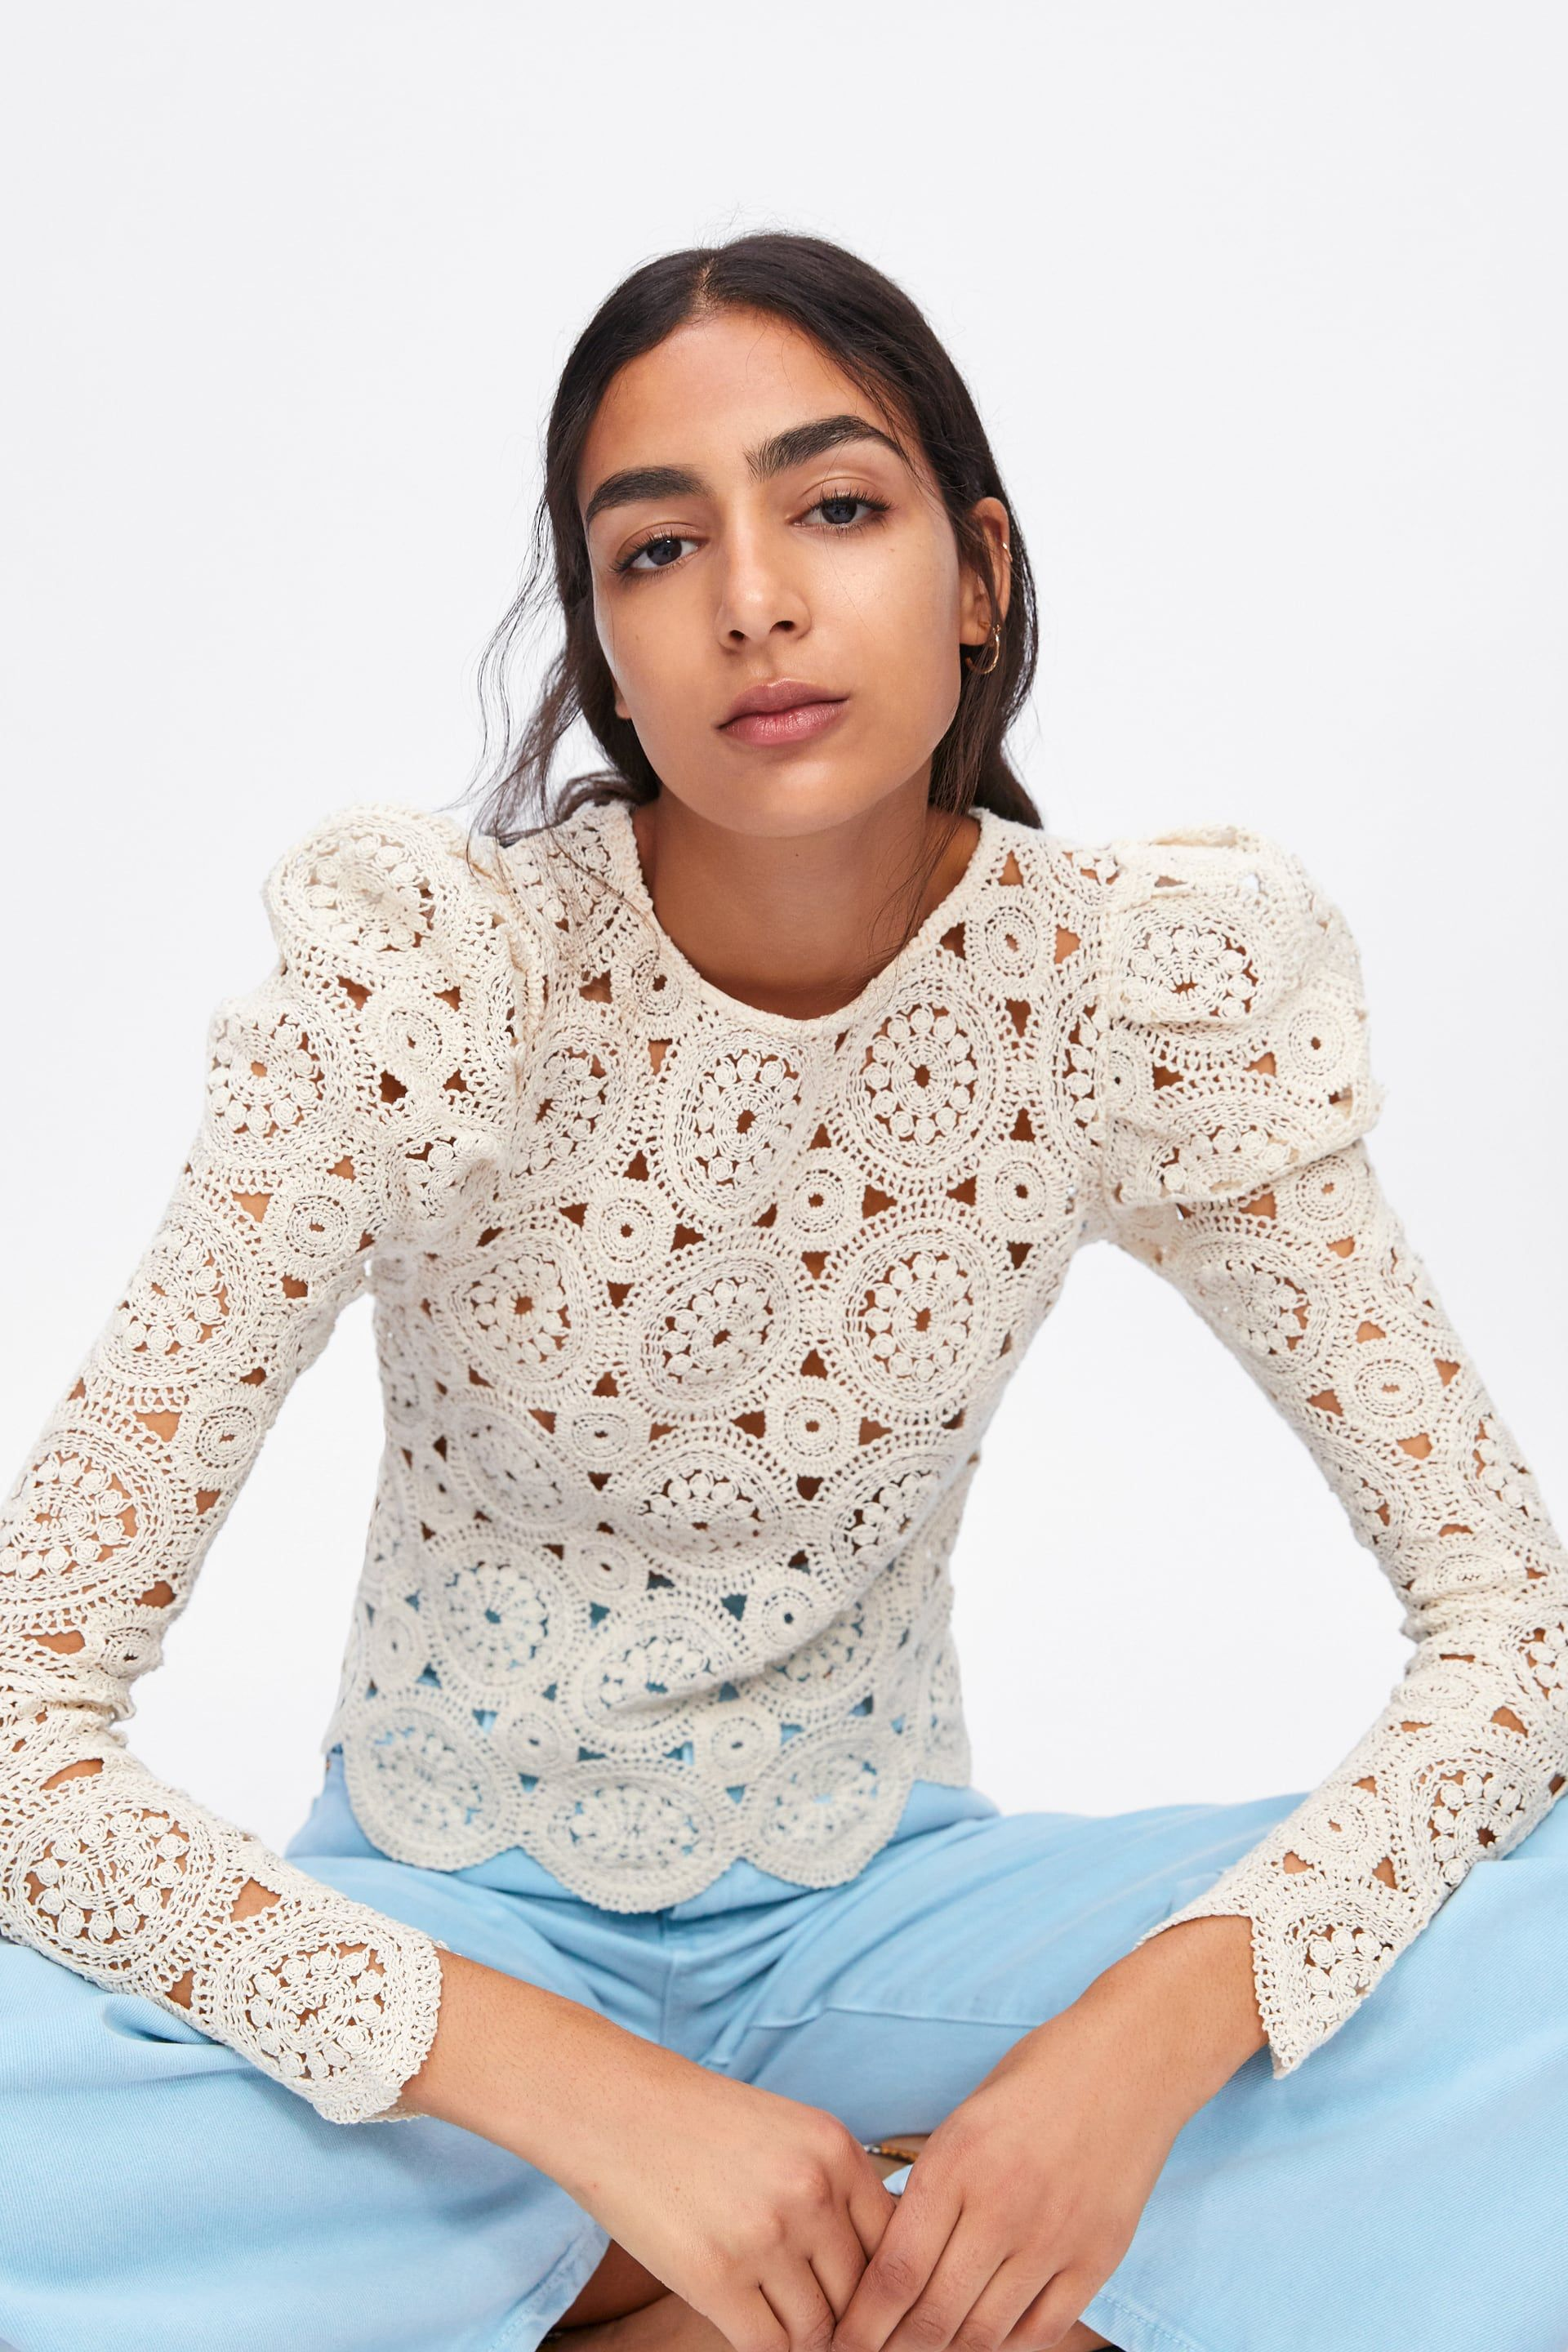 7a5d5aca83 Textured weave top with balloon sleeves in 2019 | Fashion is the new ...